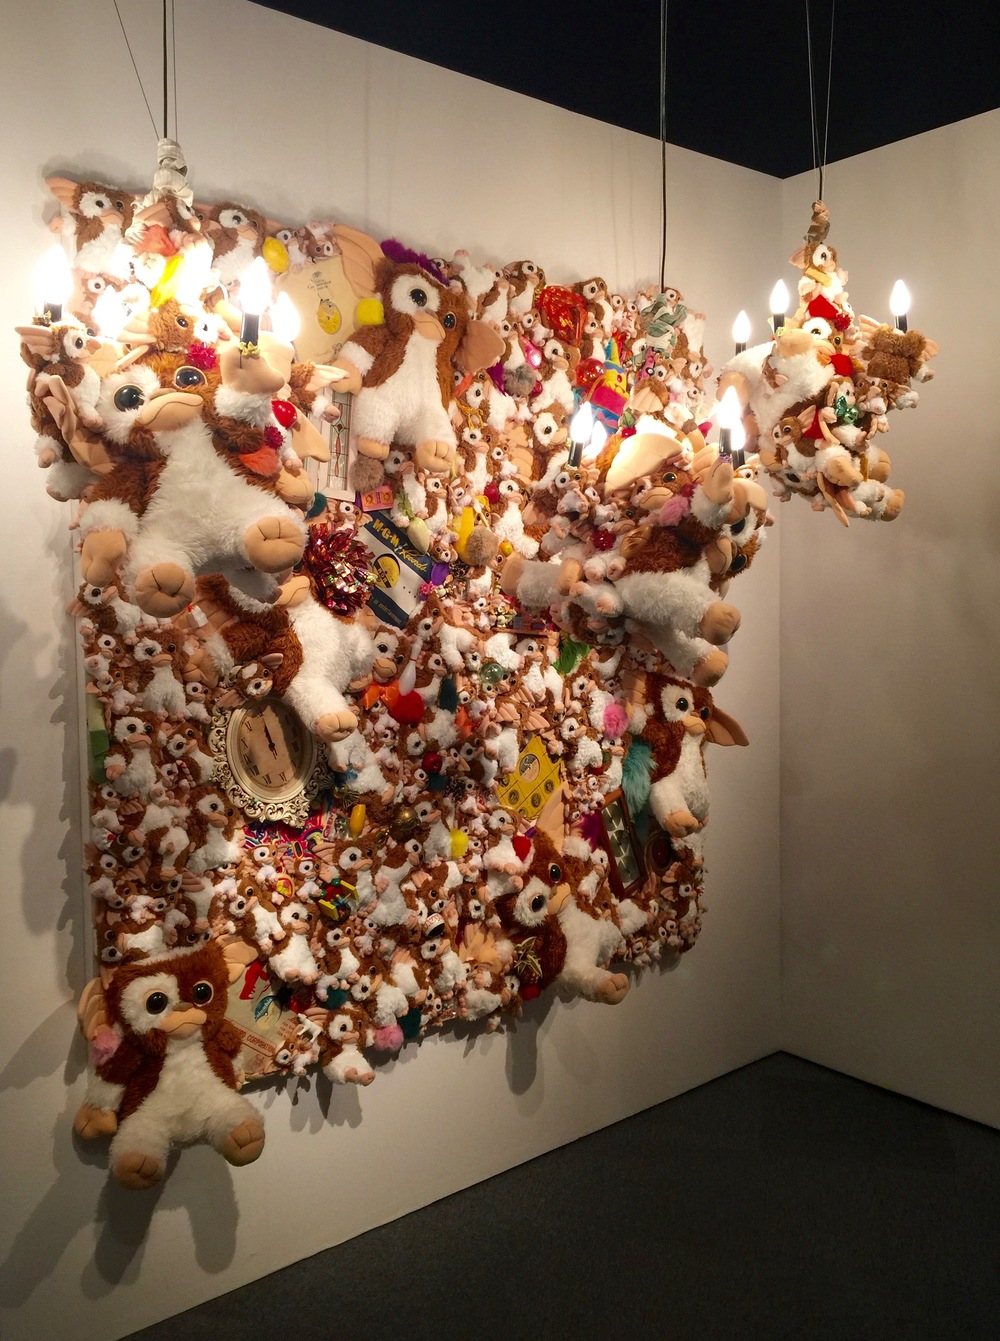 Gizmo wall piece and chandeliers